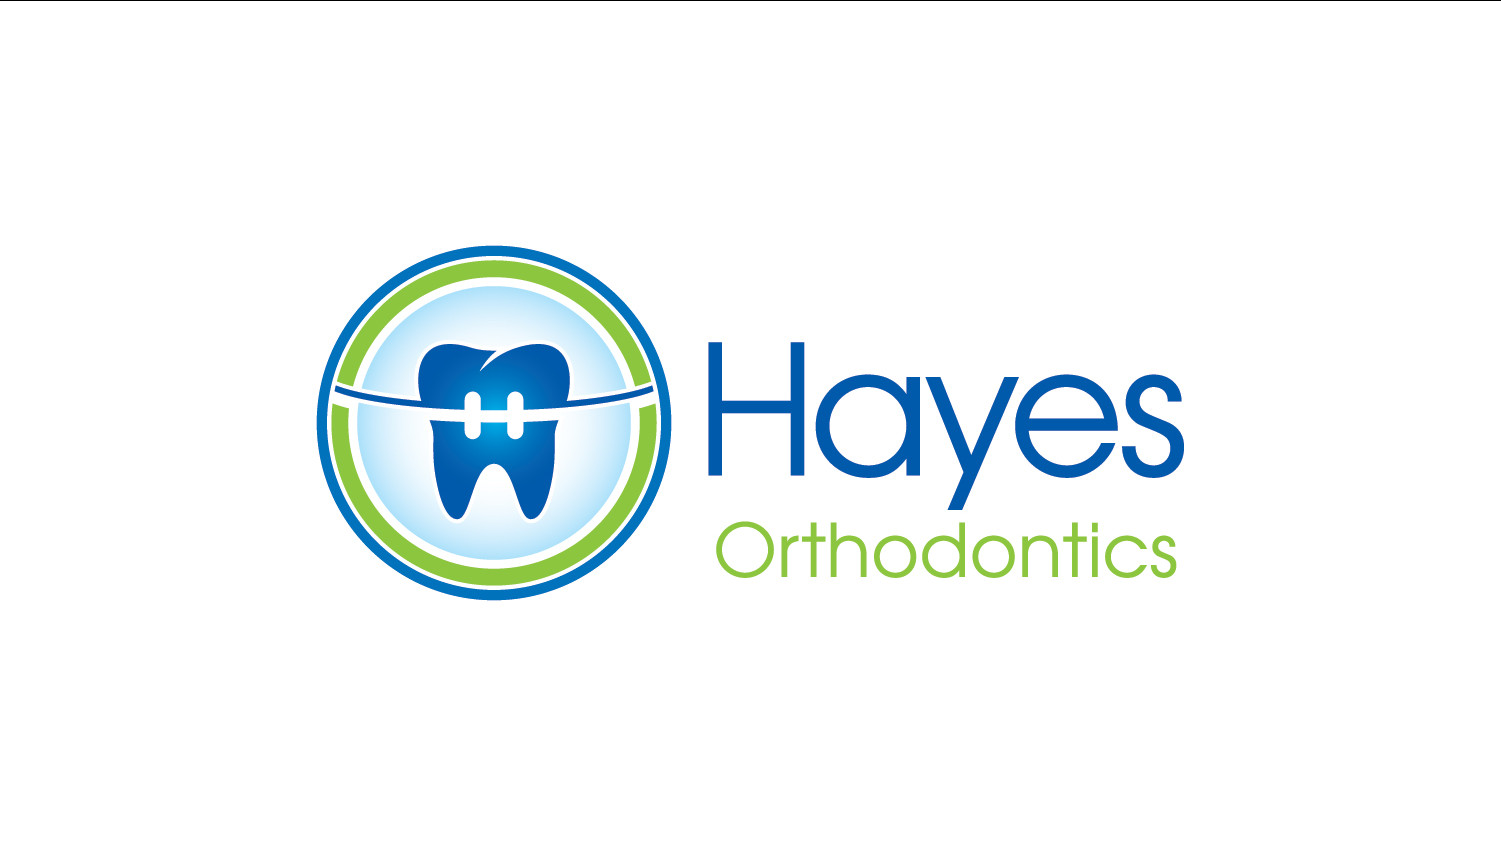 Hayes Orthodontics